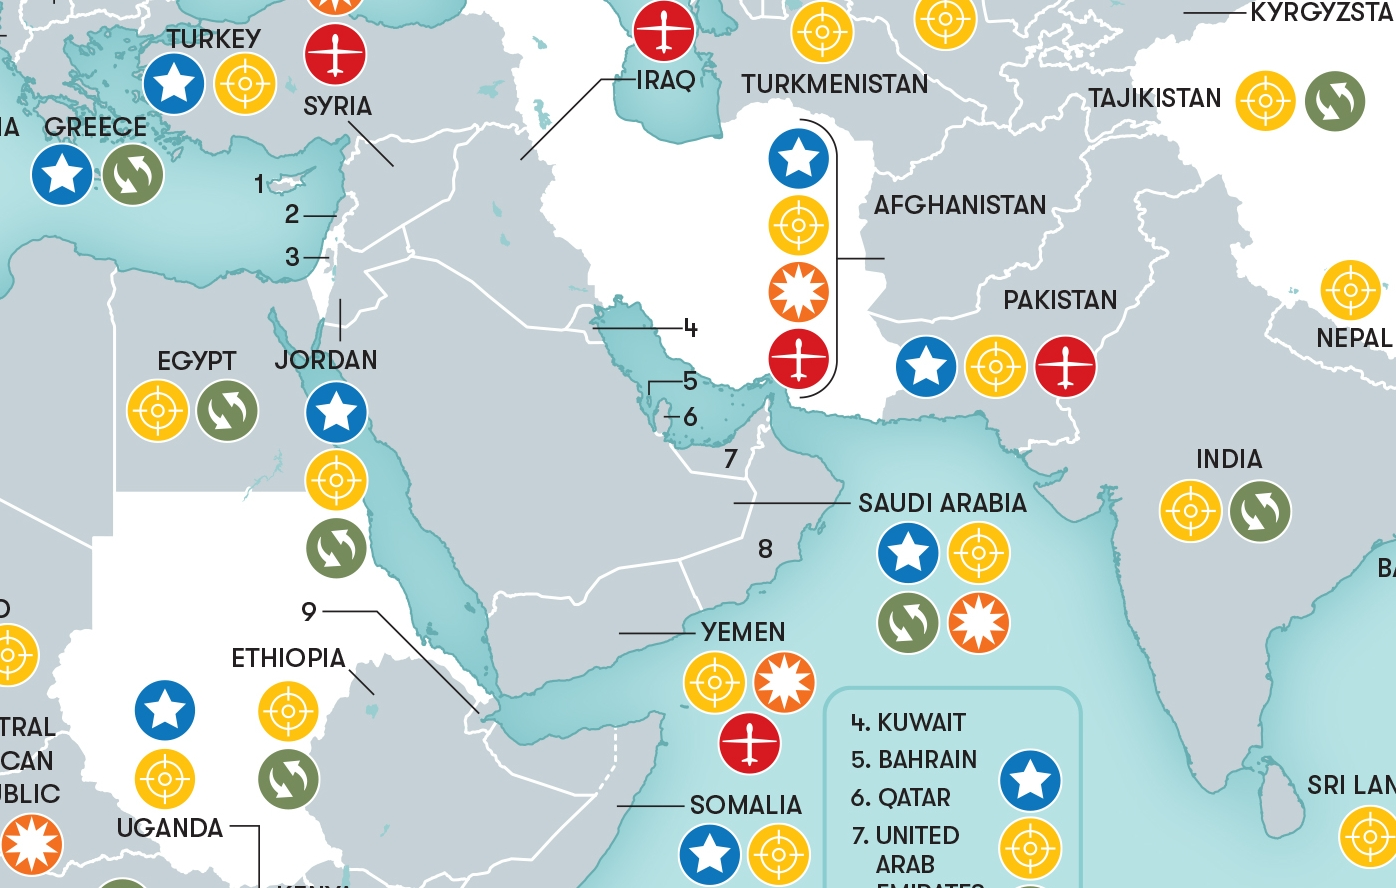 This Map Shows Where In The World The U.s. Military Is Combatting within Army Bases In Germany Map